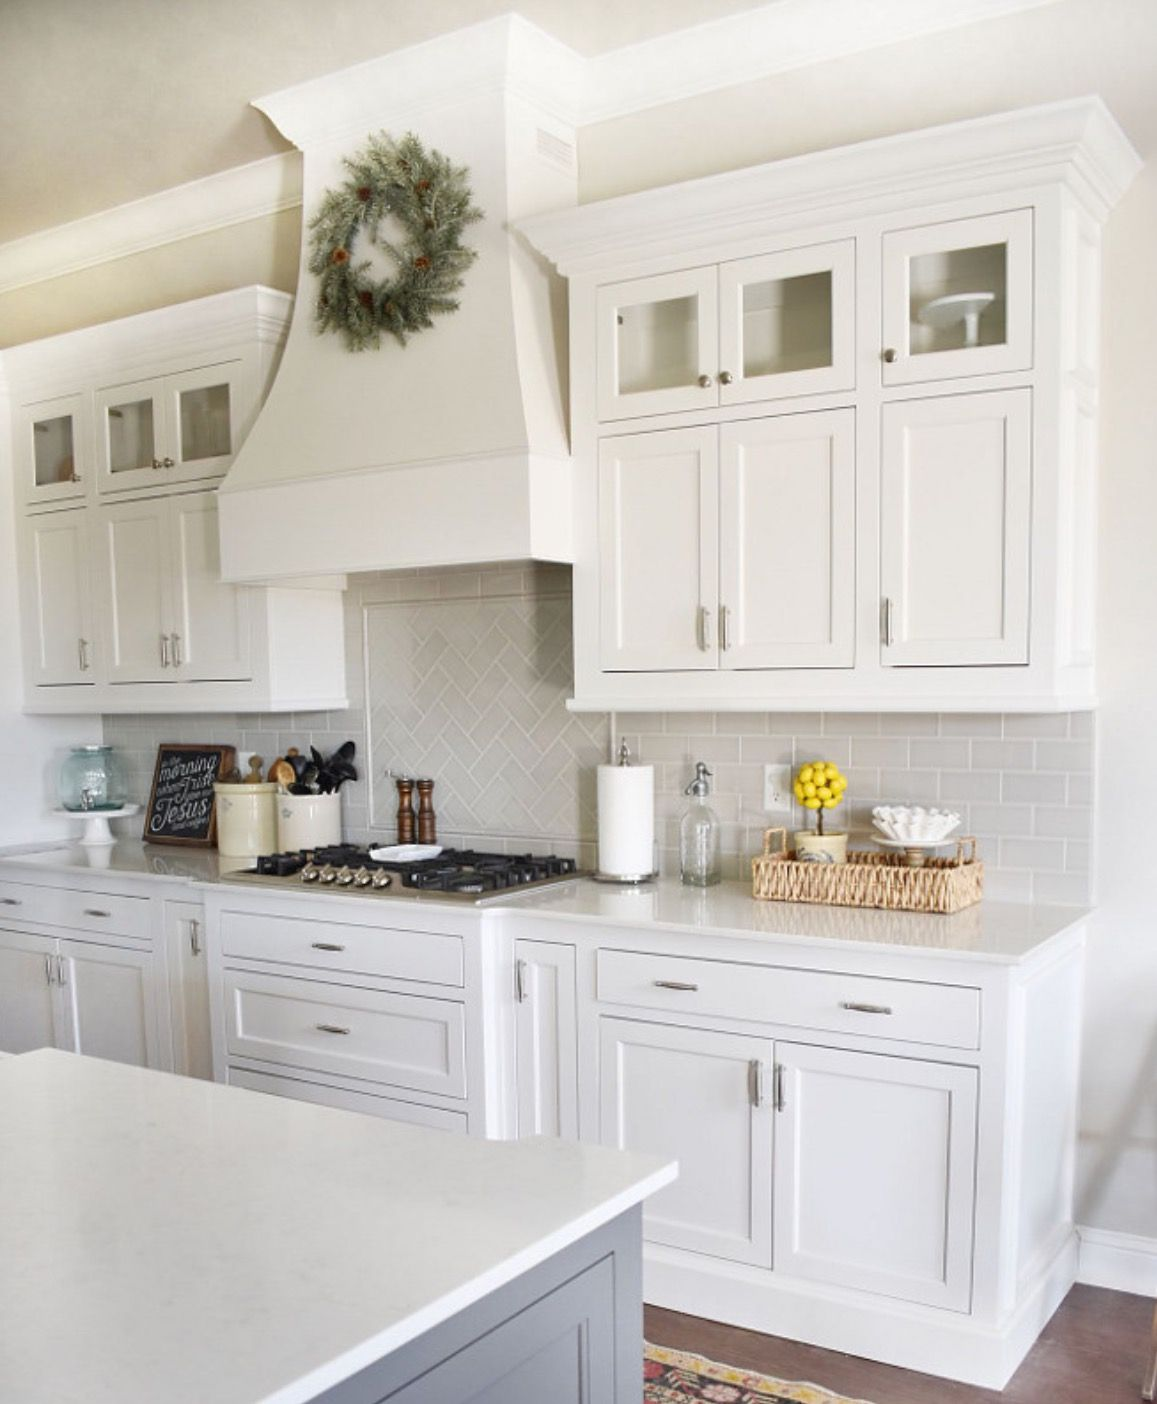 White Kitchen: White Kitchen With Glass Inserts In Upper Cabinets